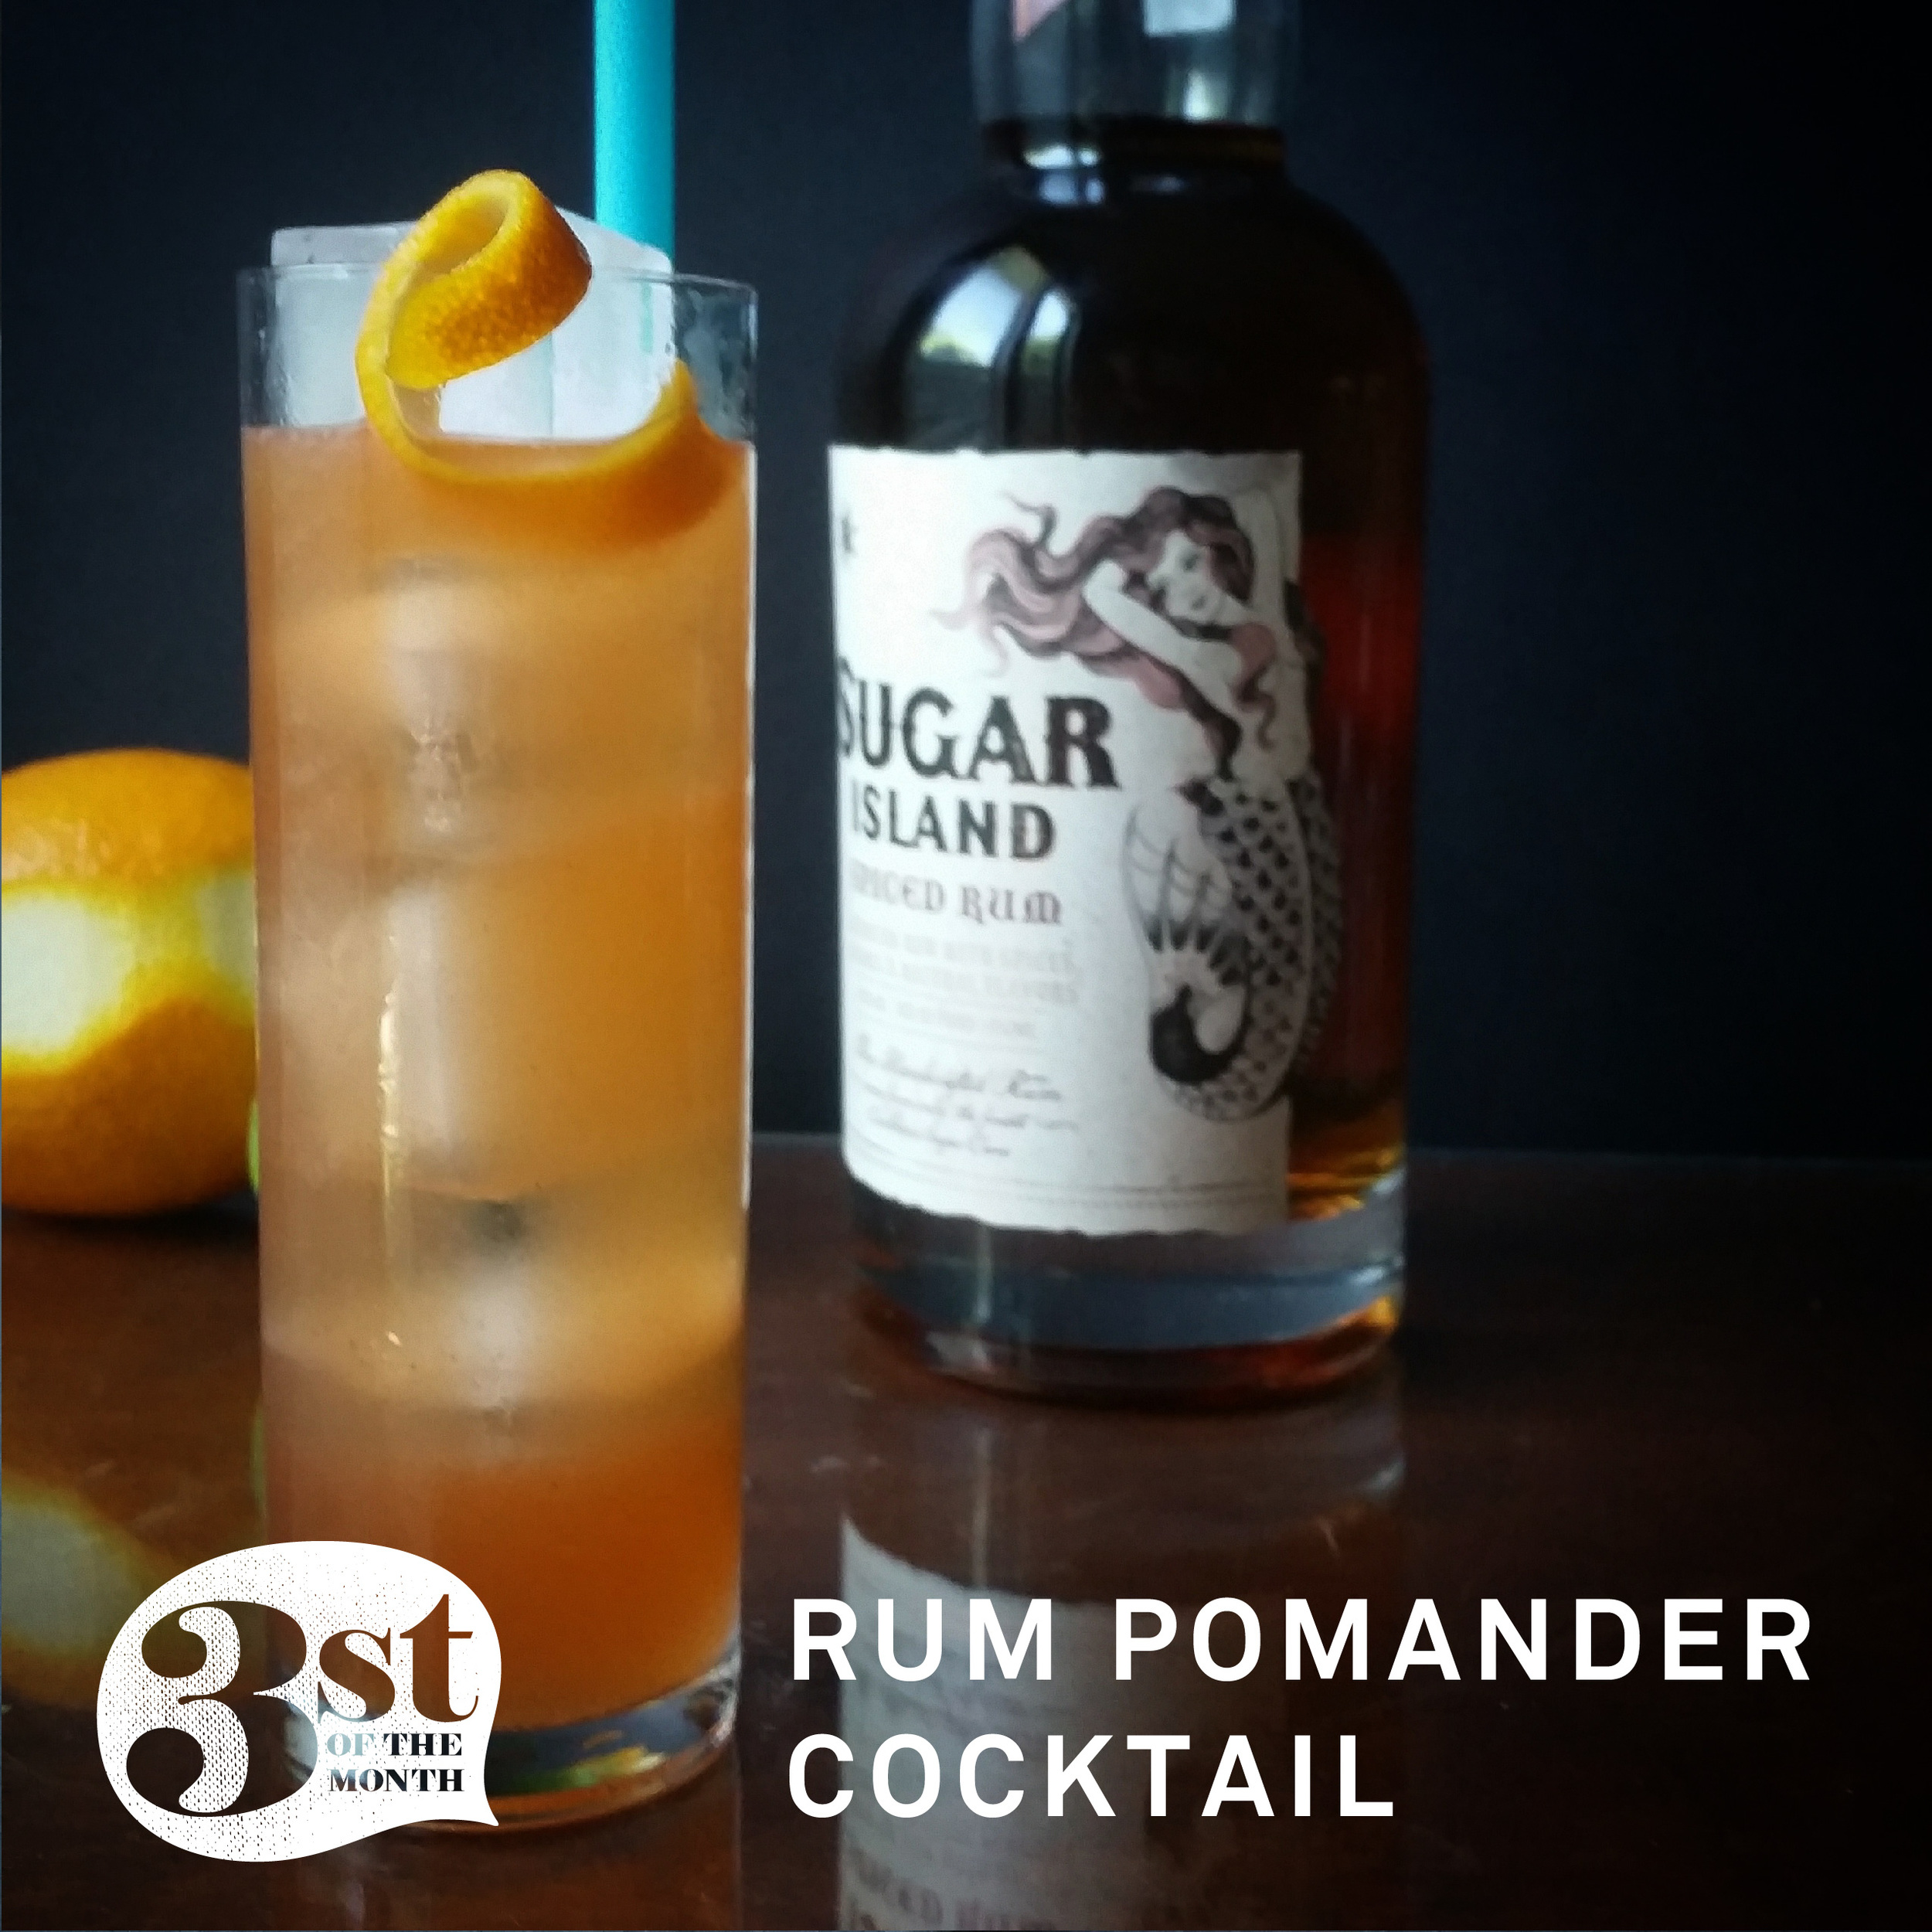 3st of the Month presents: the Rum Pomander Cocktail